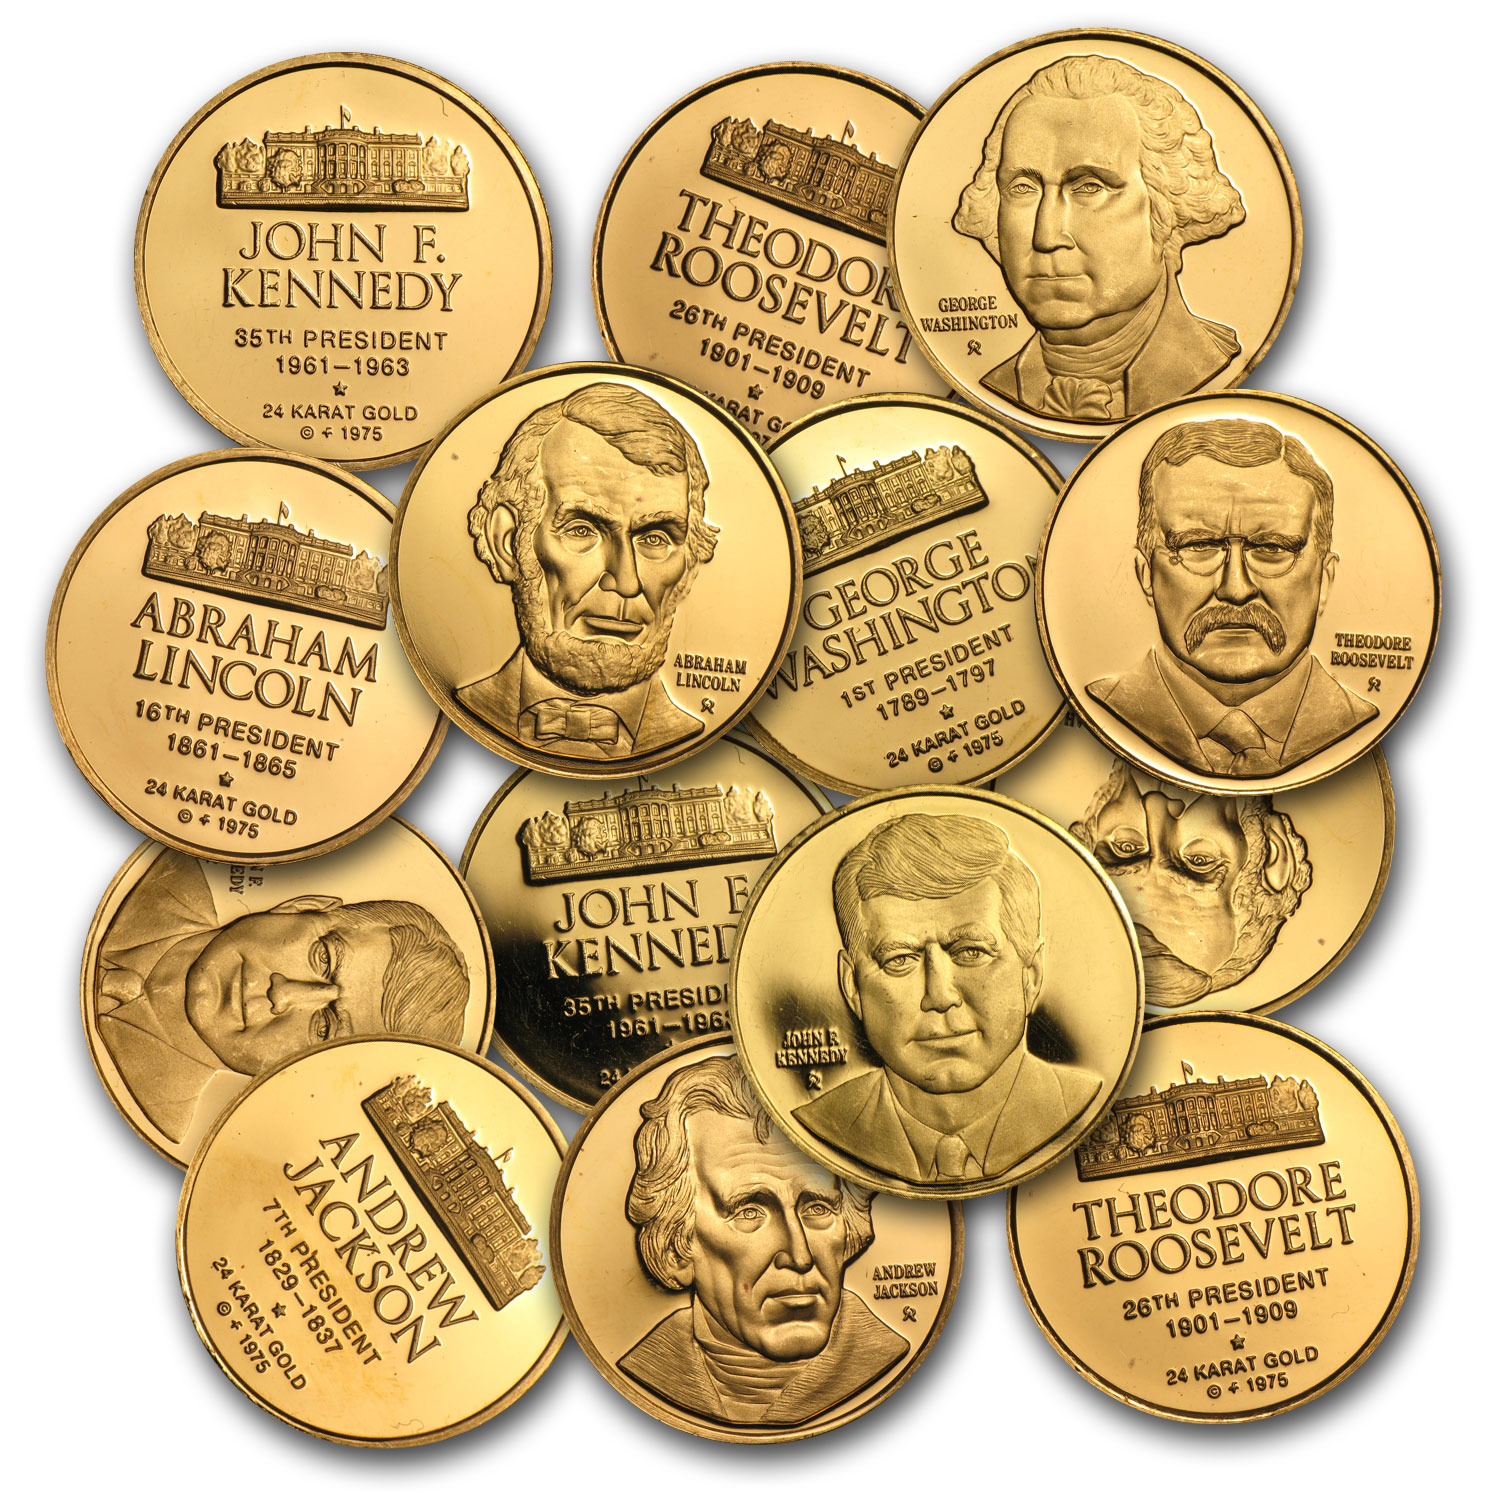 .15 oz Gold Rounds - Presidential Gold Medals